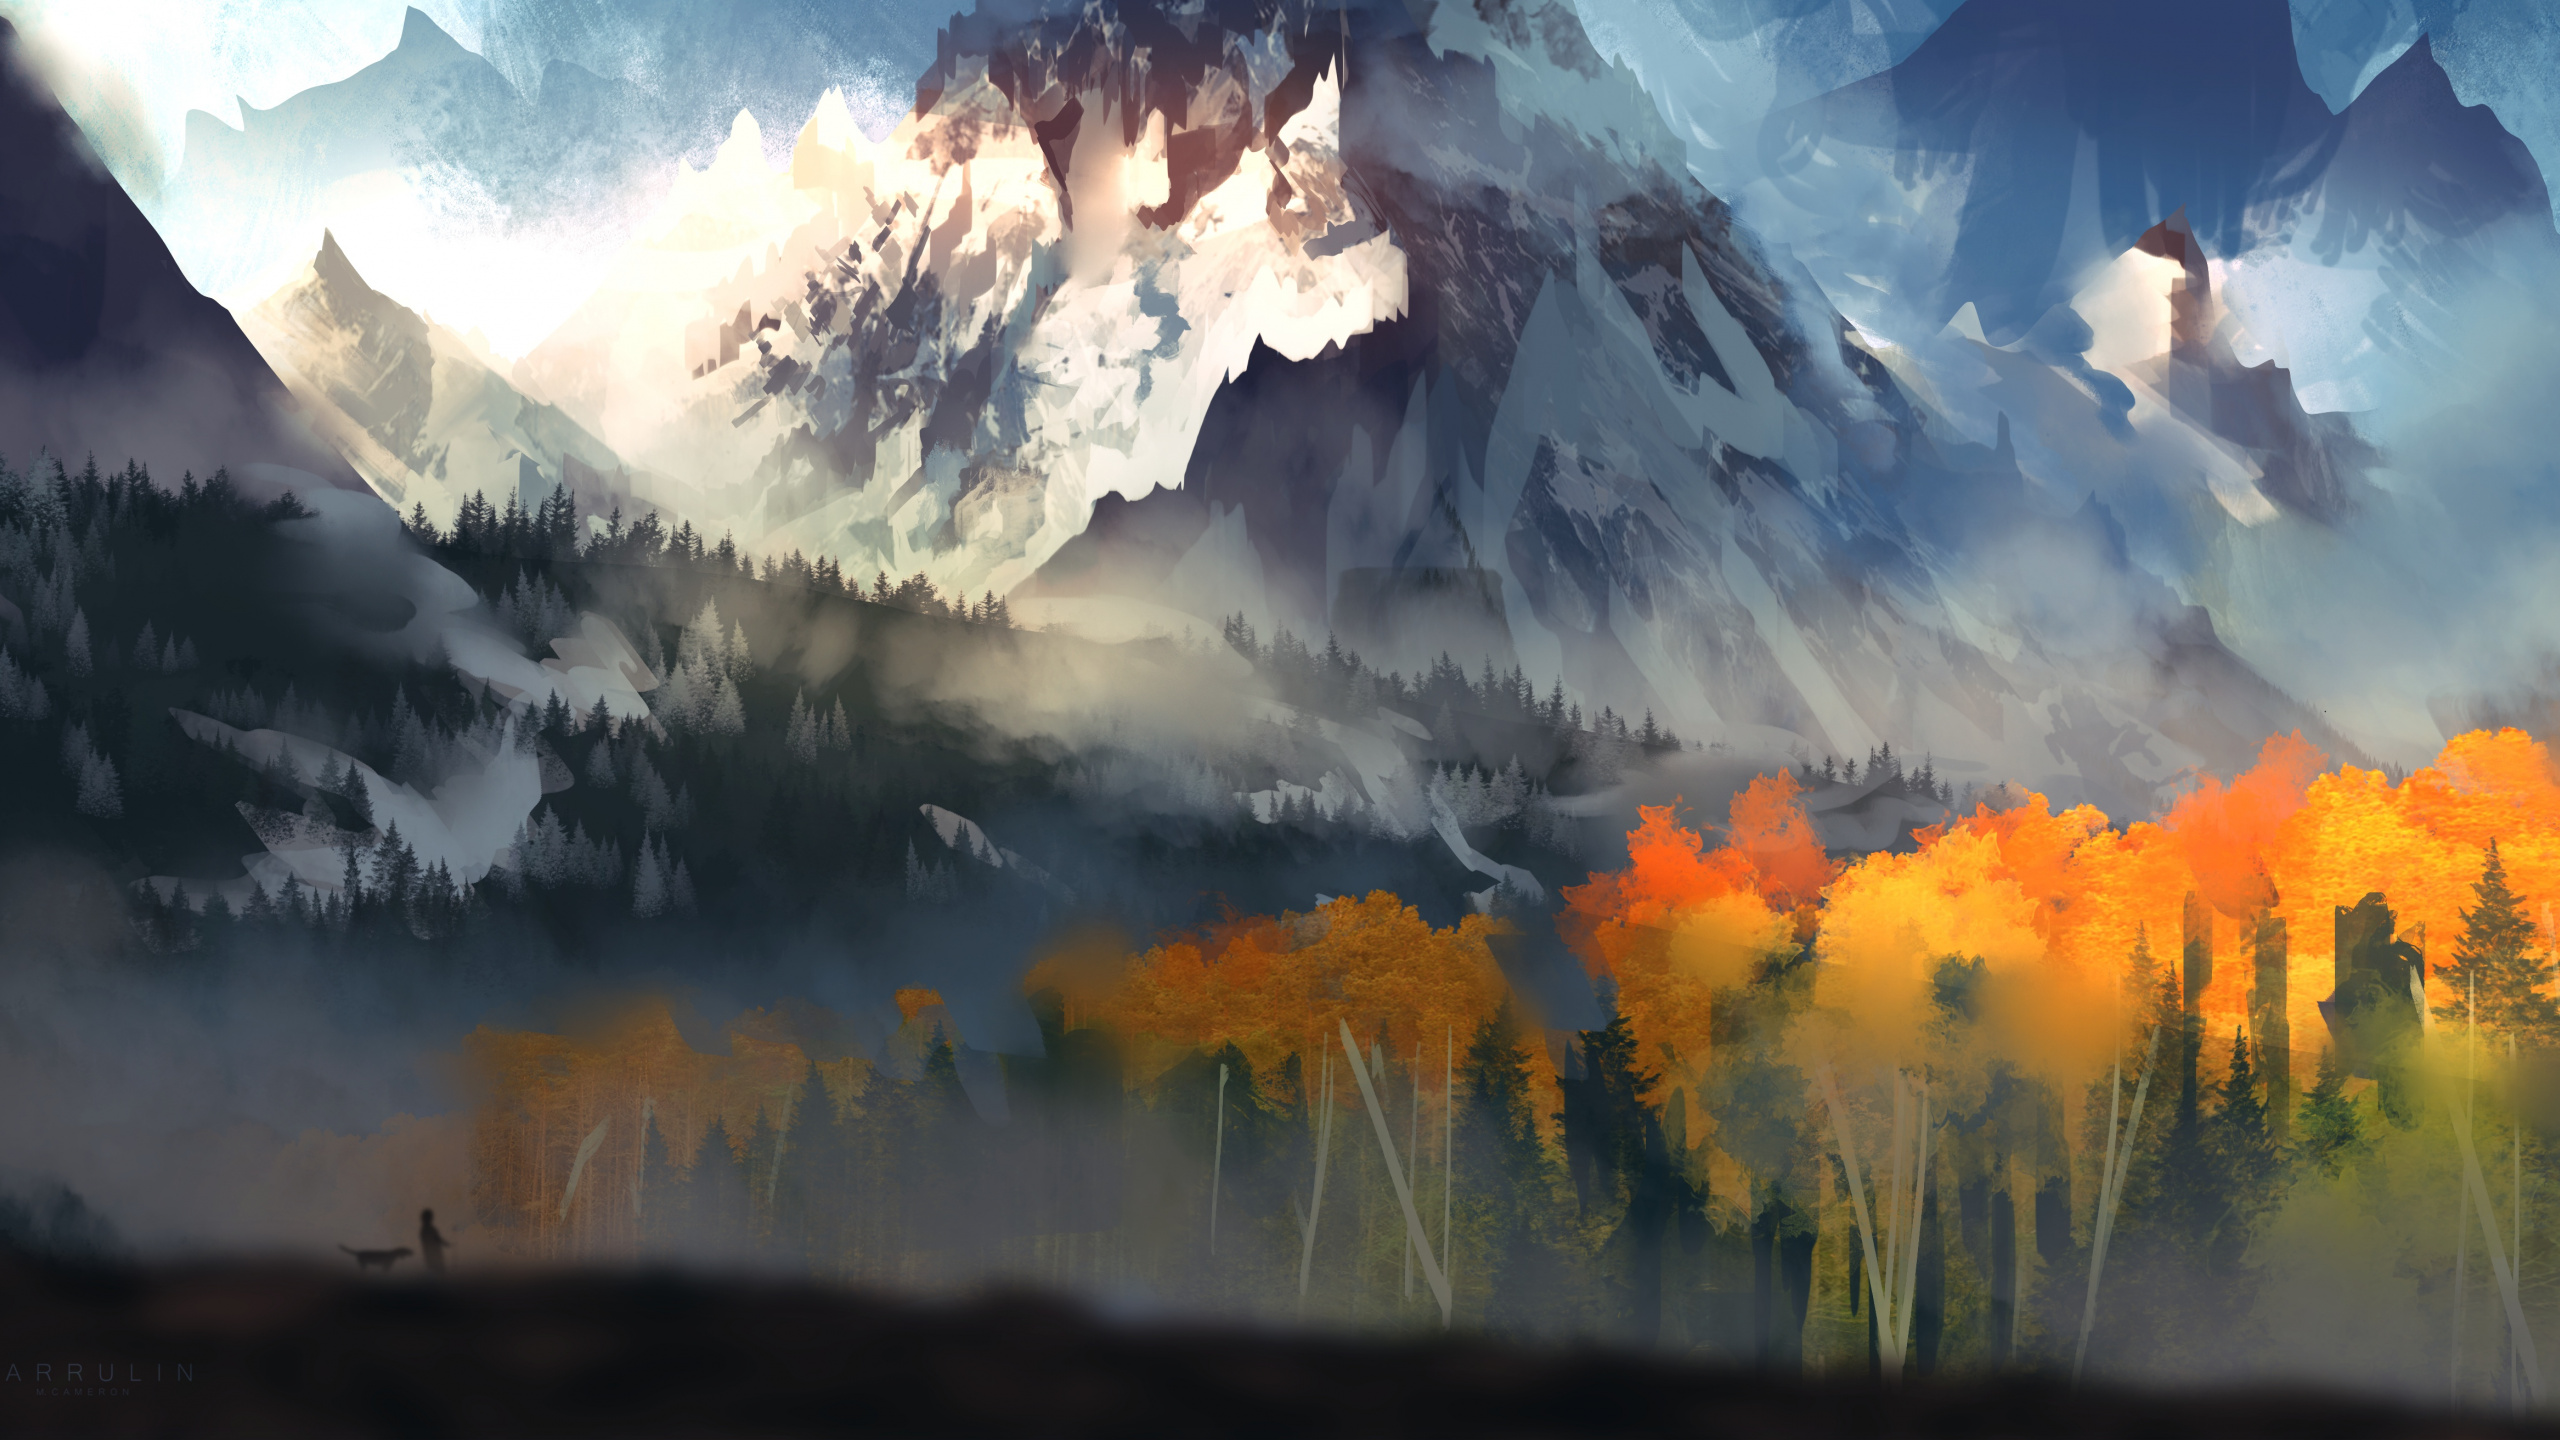 Fantasy Wallpaper 1440p Posted By John Anderson